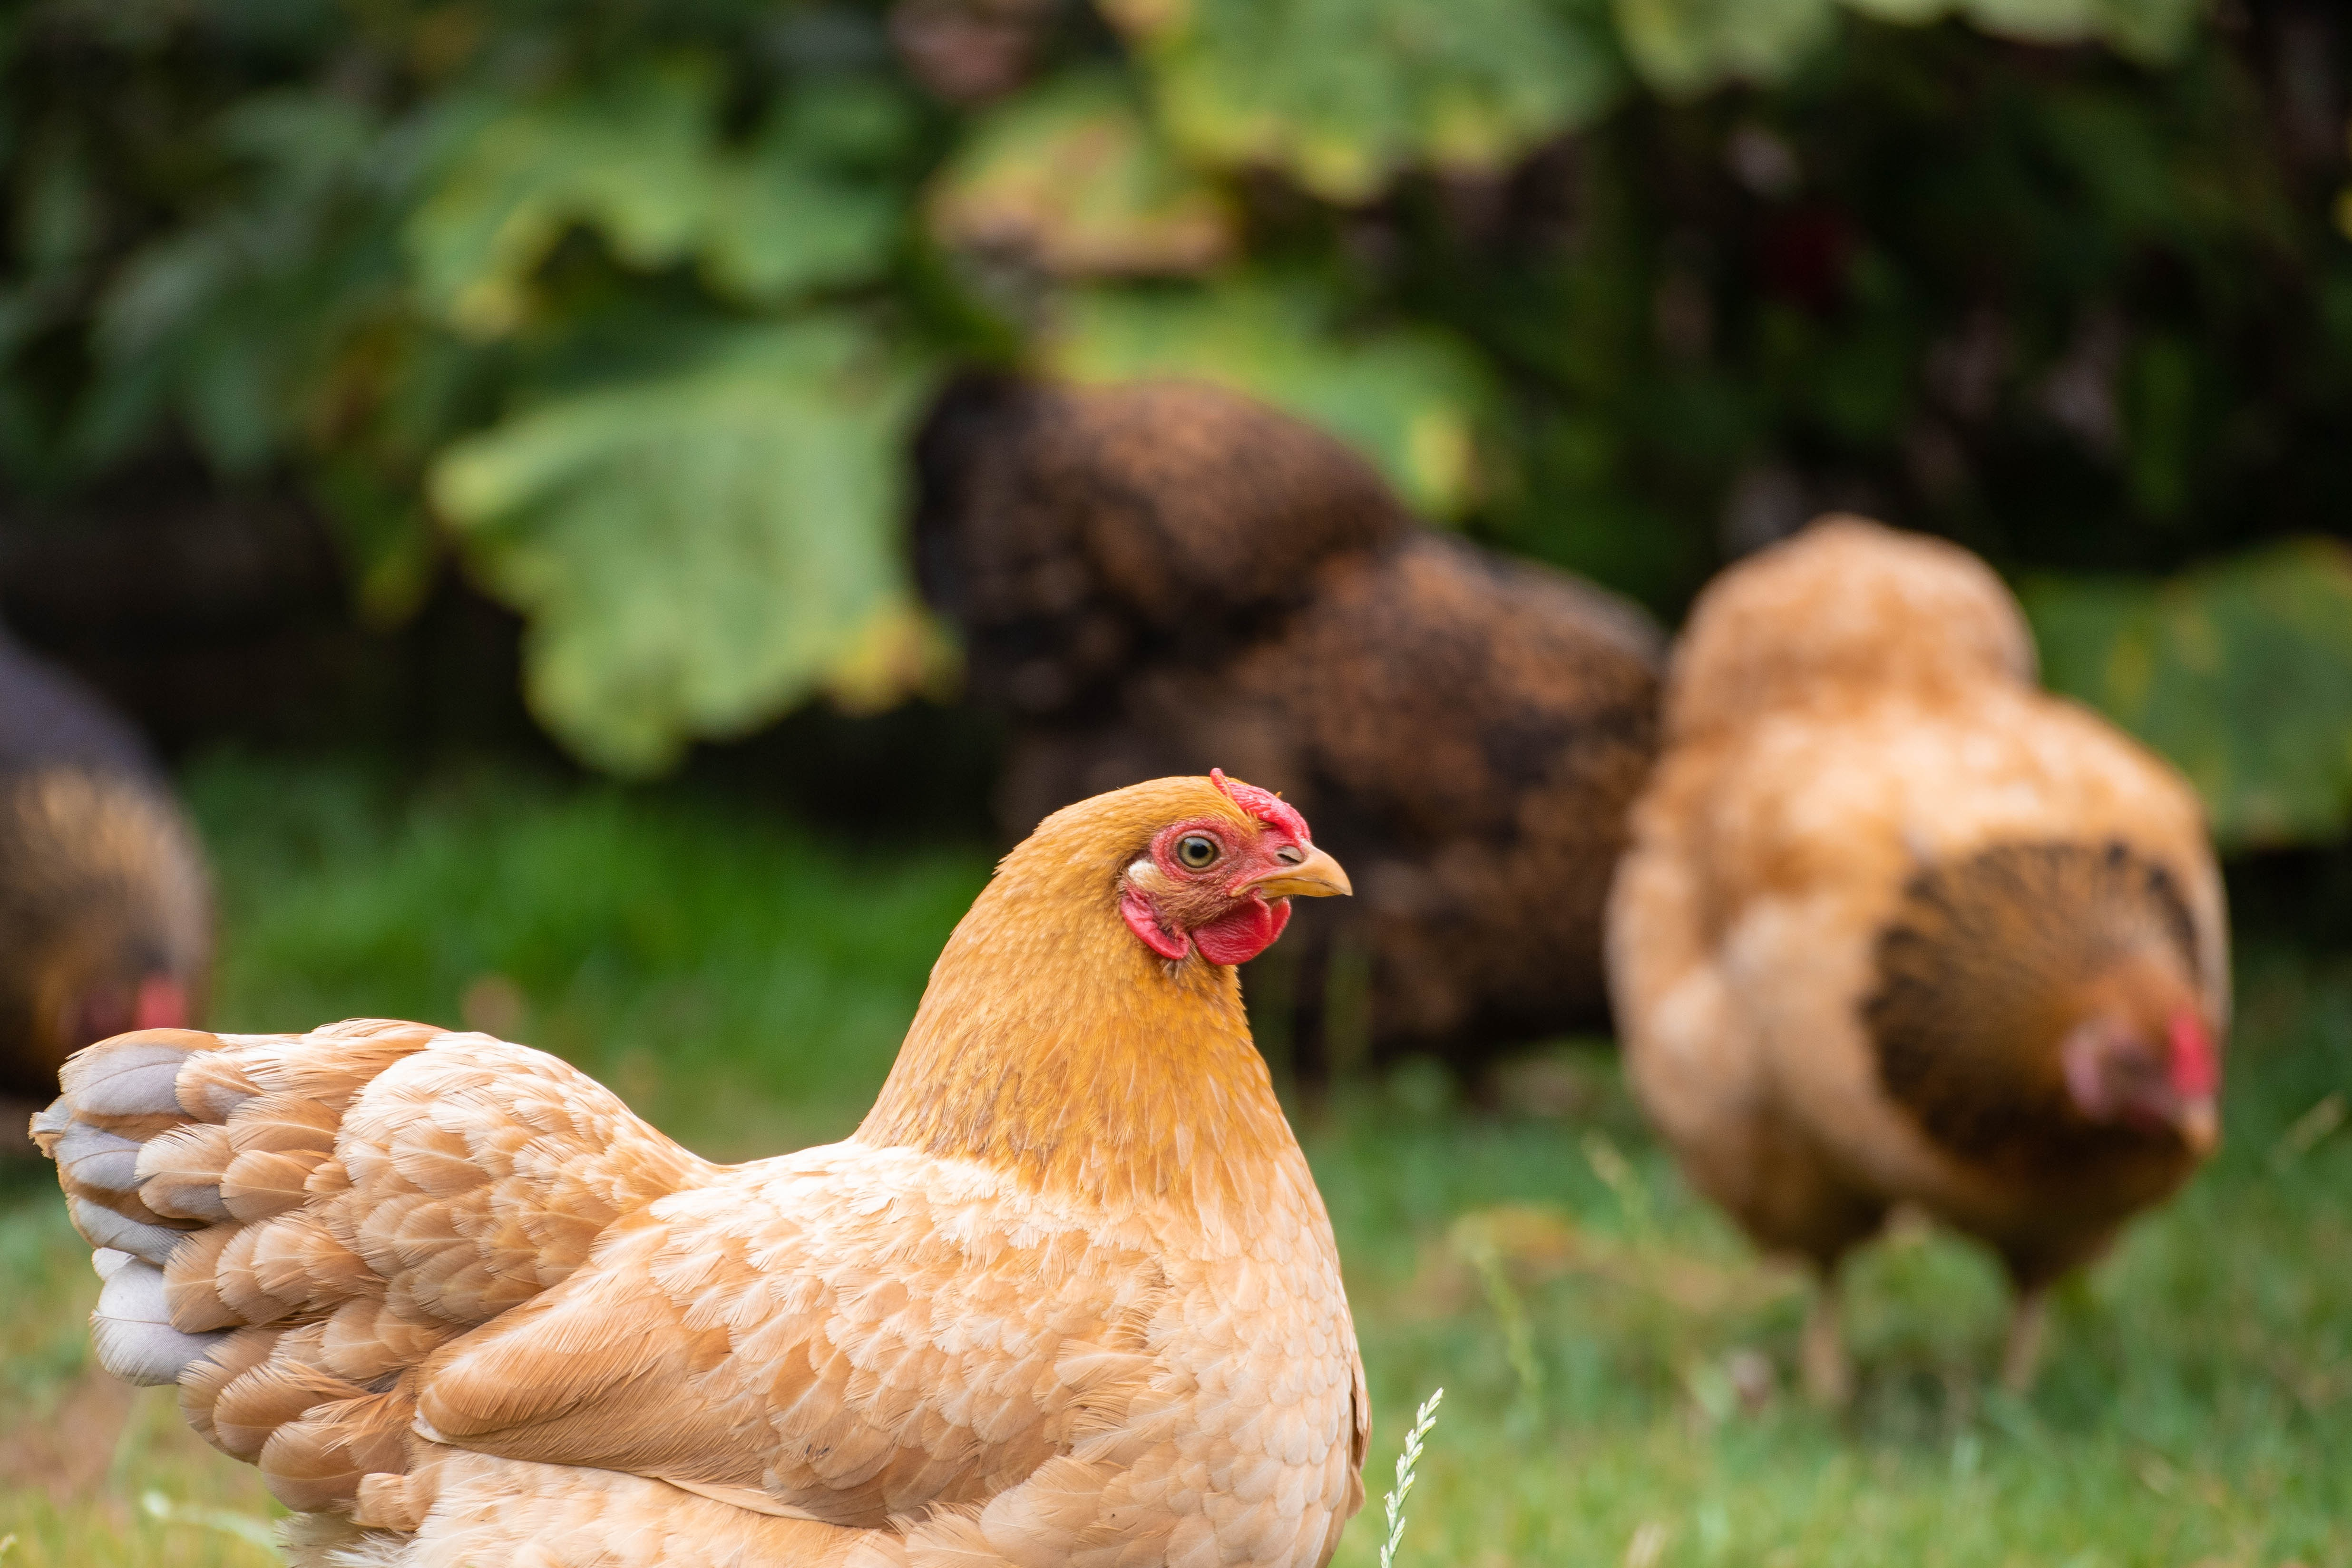 Close-focus image of light brown hens foraging in the grass.